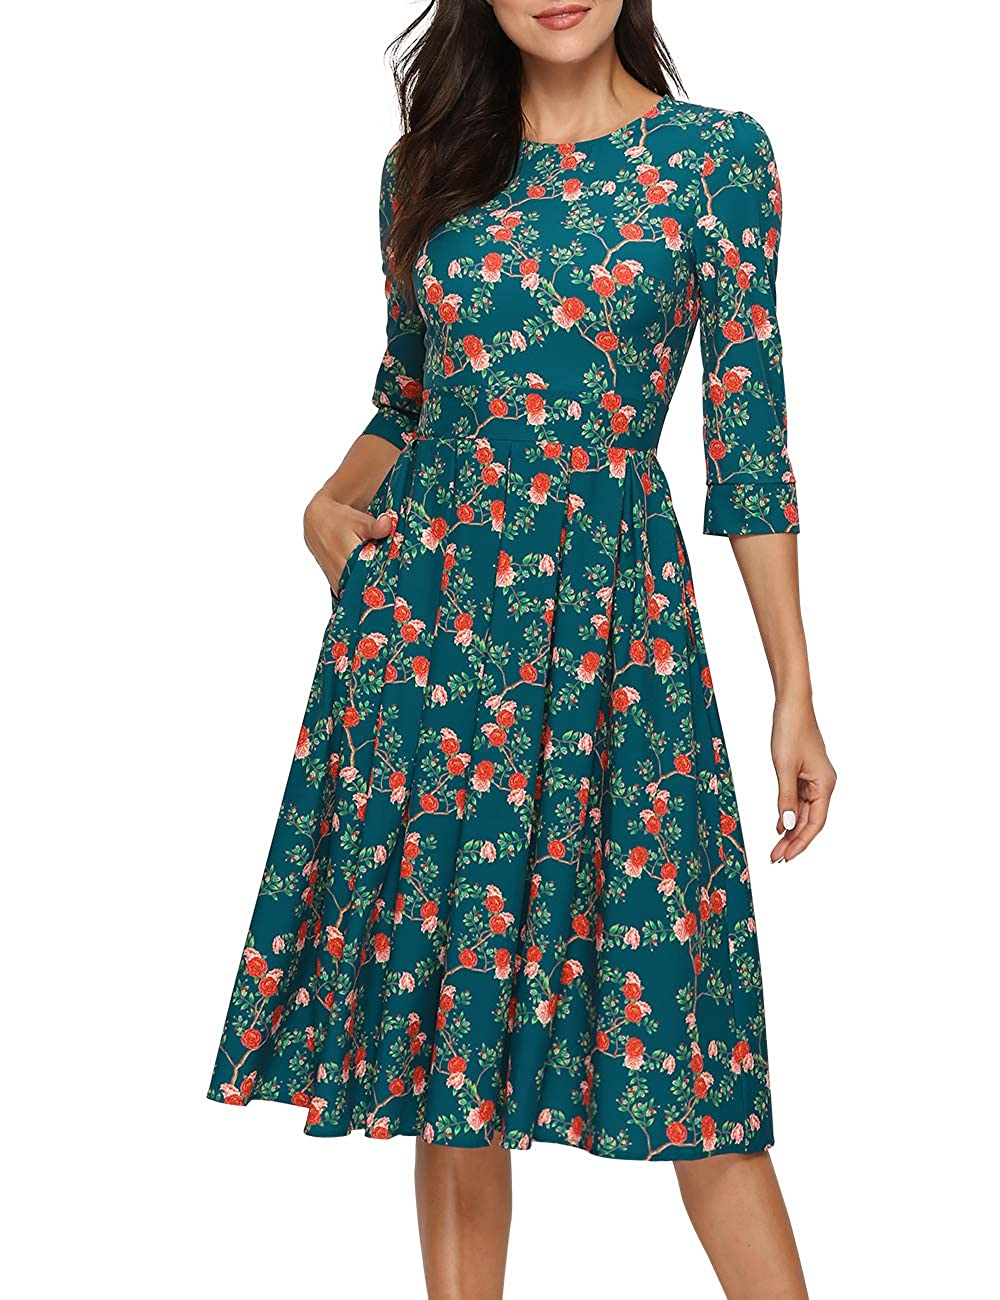 1930s Dresses | 30s Art Deco Dress Simple Flavor Womens Floral Vintage Dress Elegant Midi Evening Dress 3/4 Sleeves $26.99 AT vintagedancer.com